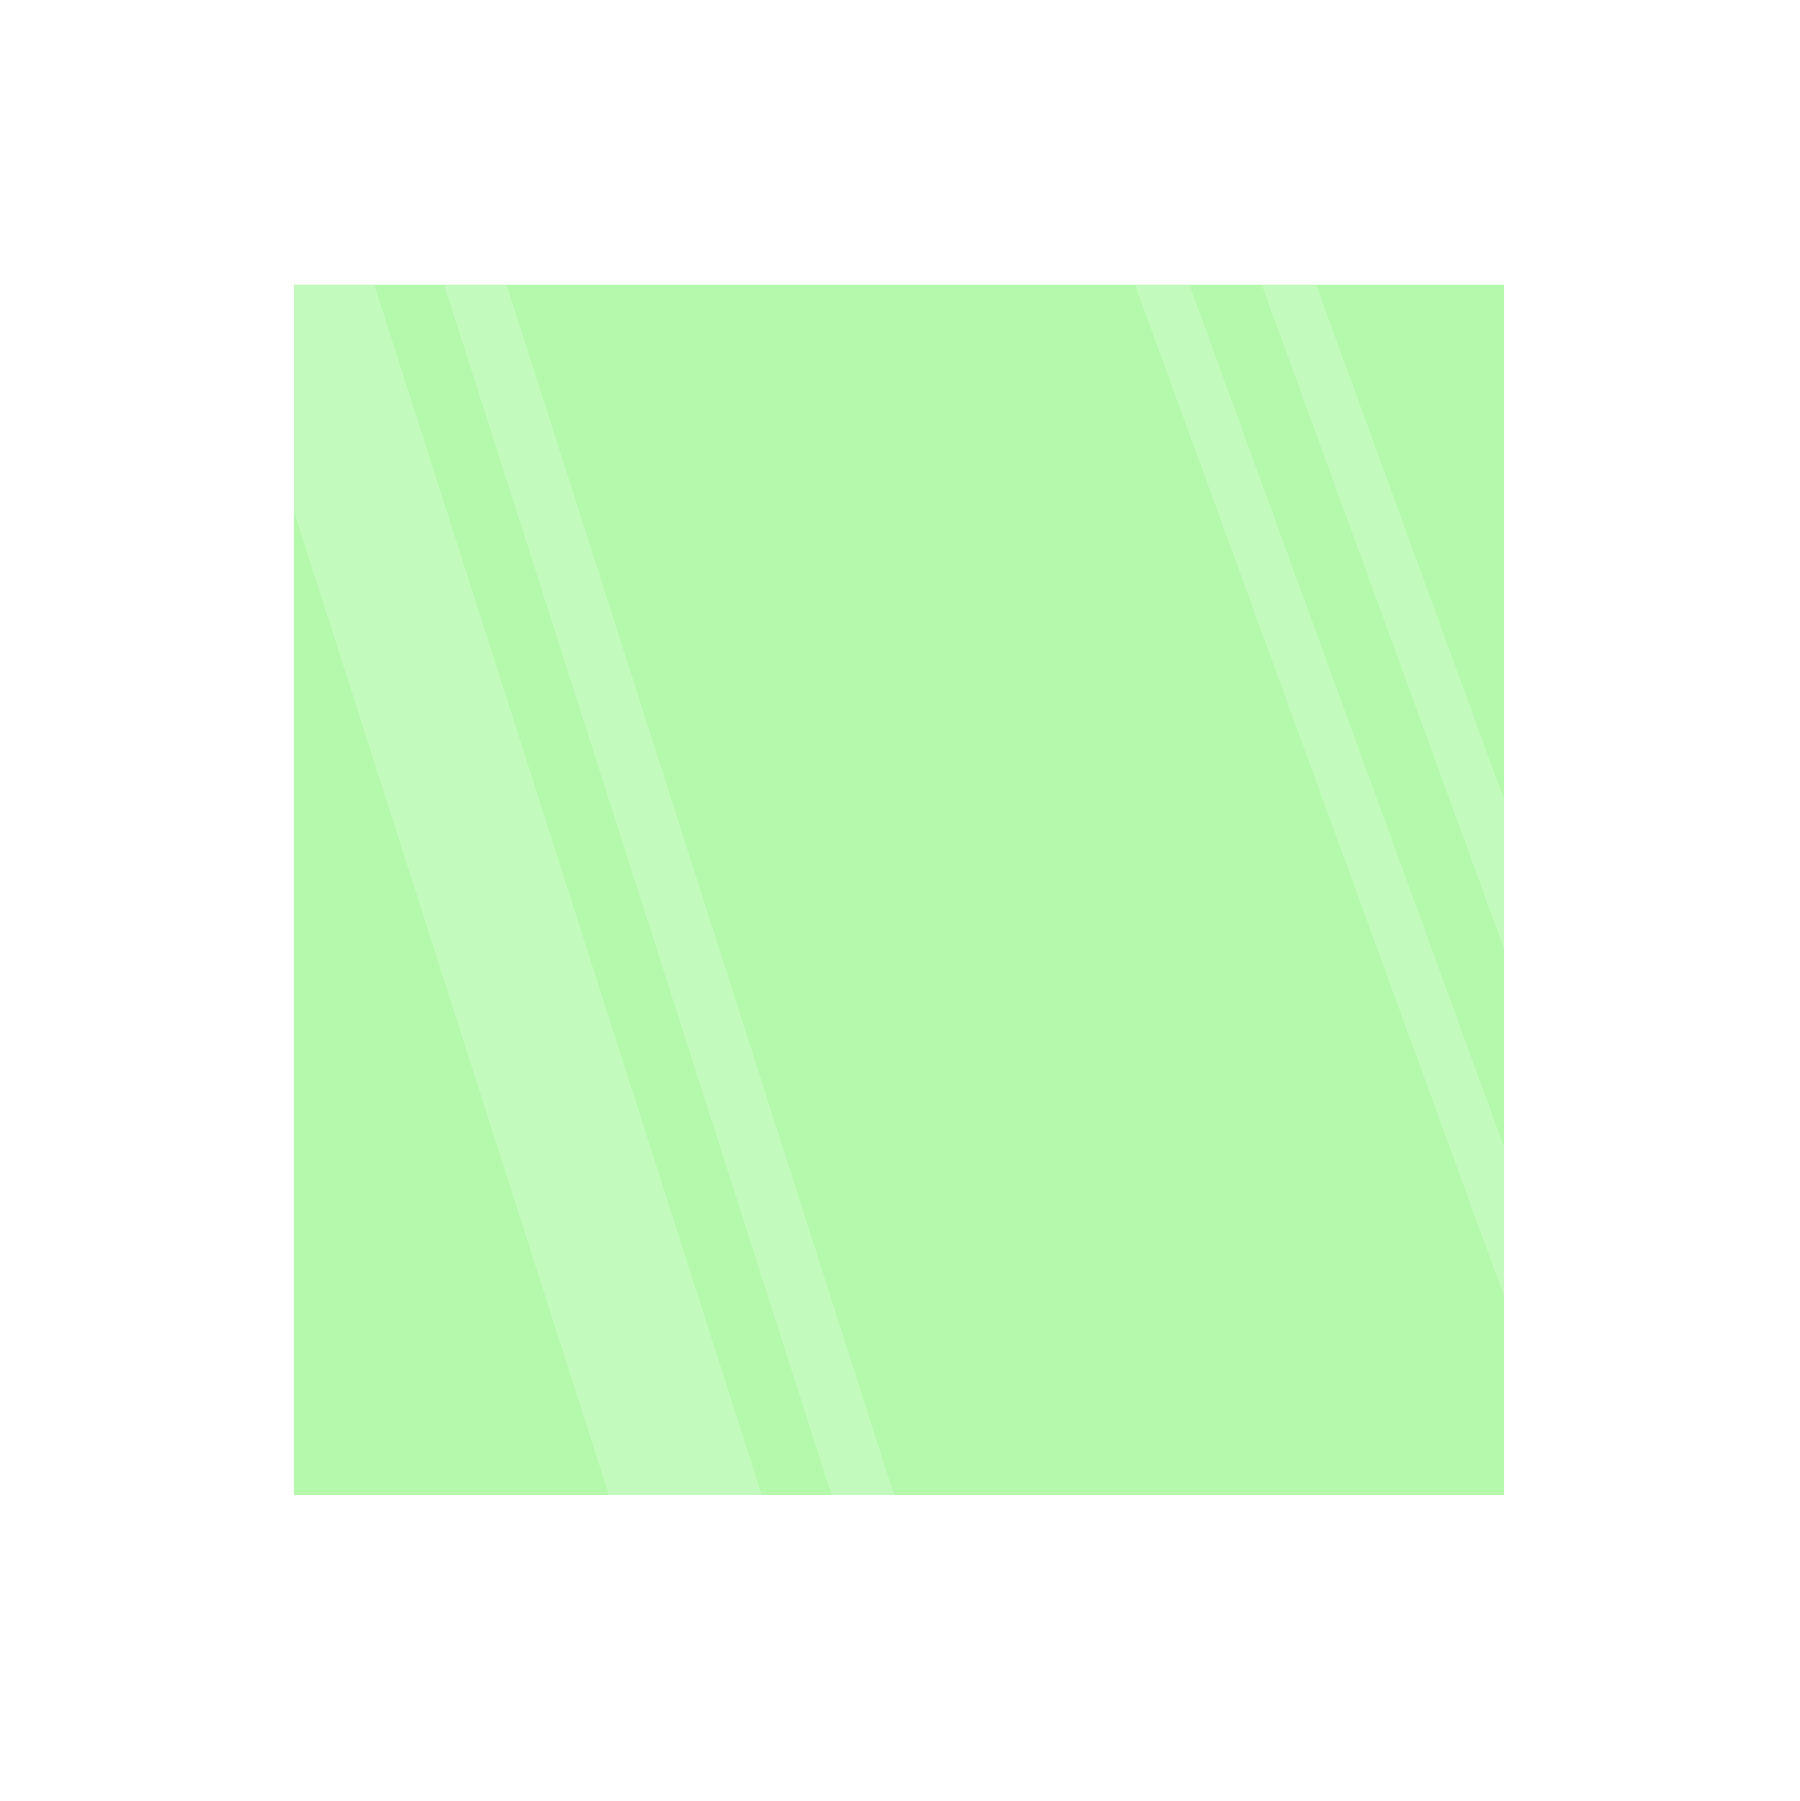 Green 6x6 Glowing Glass Tile Image